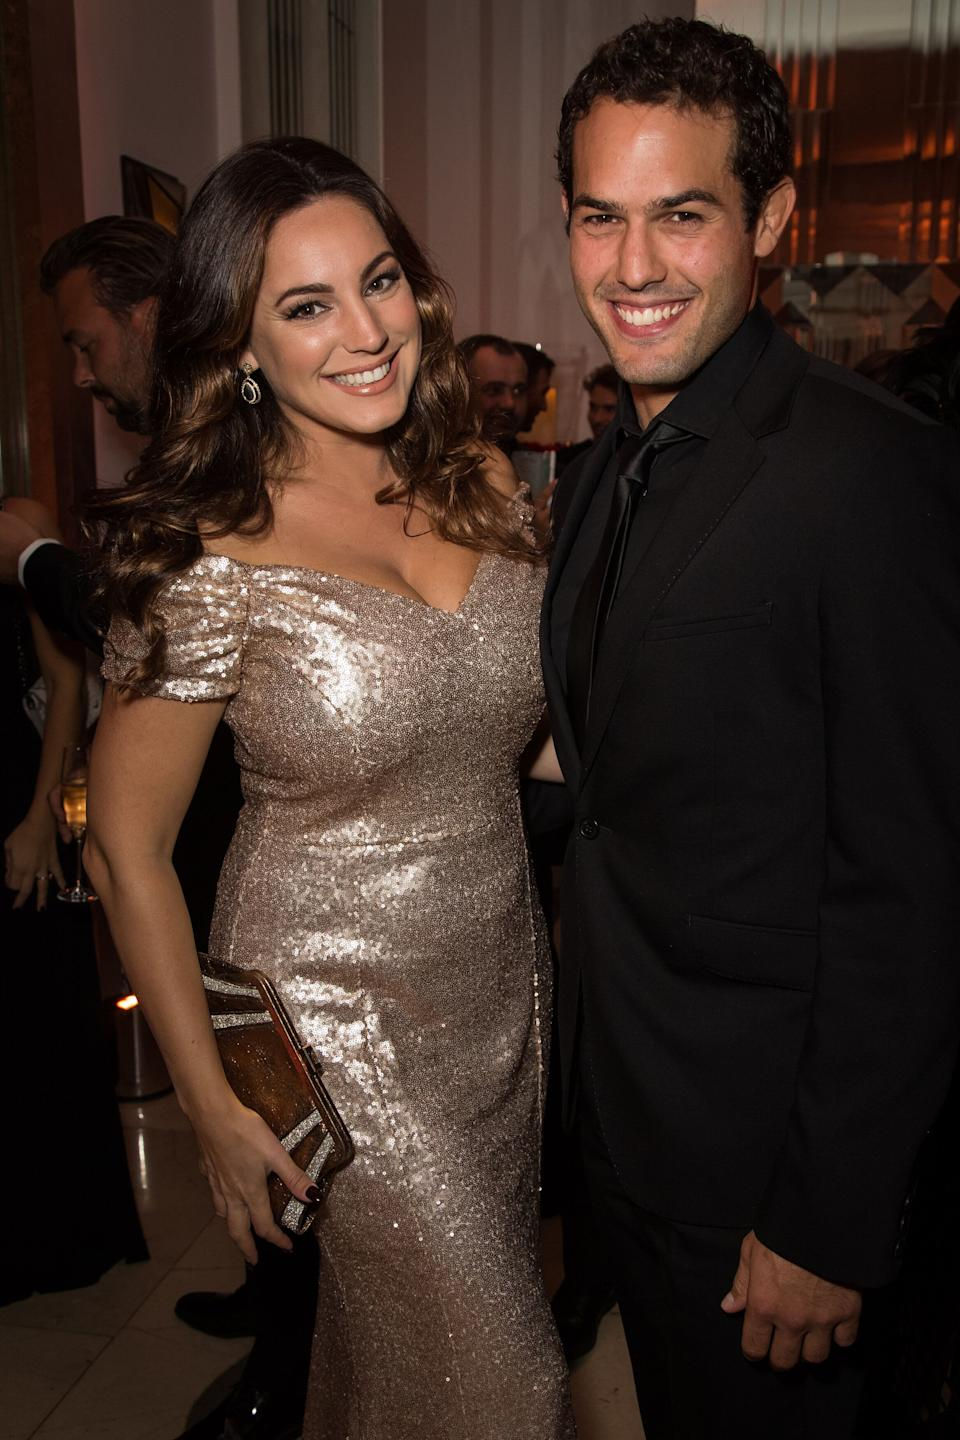 Model Kelly Brook and Jeremy Parisi attend the 'Brilliant is Beautiful' fund raiser dinner organized by the NGO Artists for Peace and Justice, in London, Sunday, Oct. 9, 2016. (Photo by Vianney Le Caer/Invision/AP)